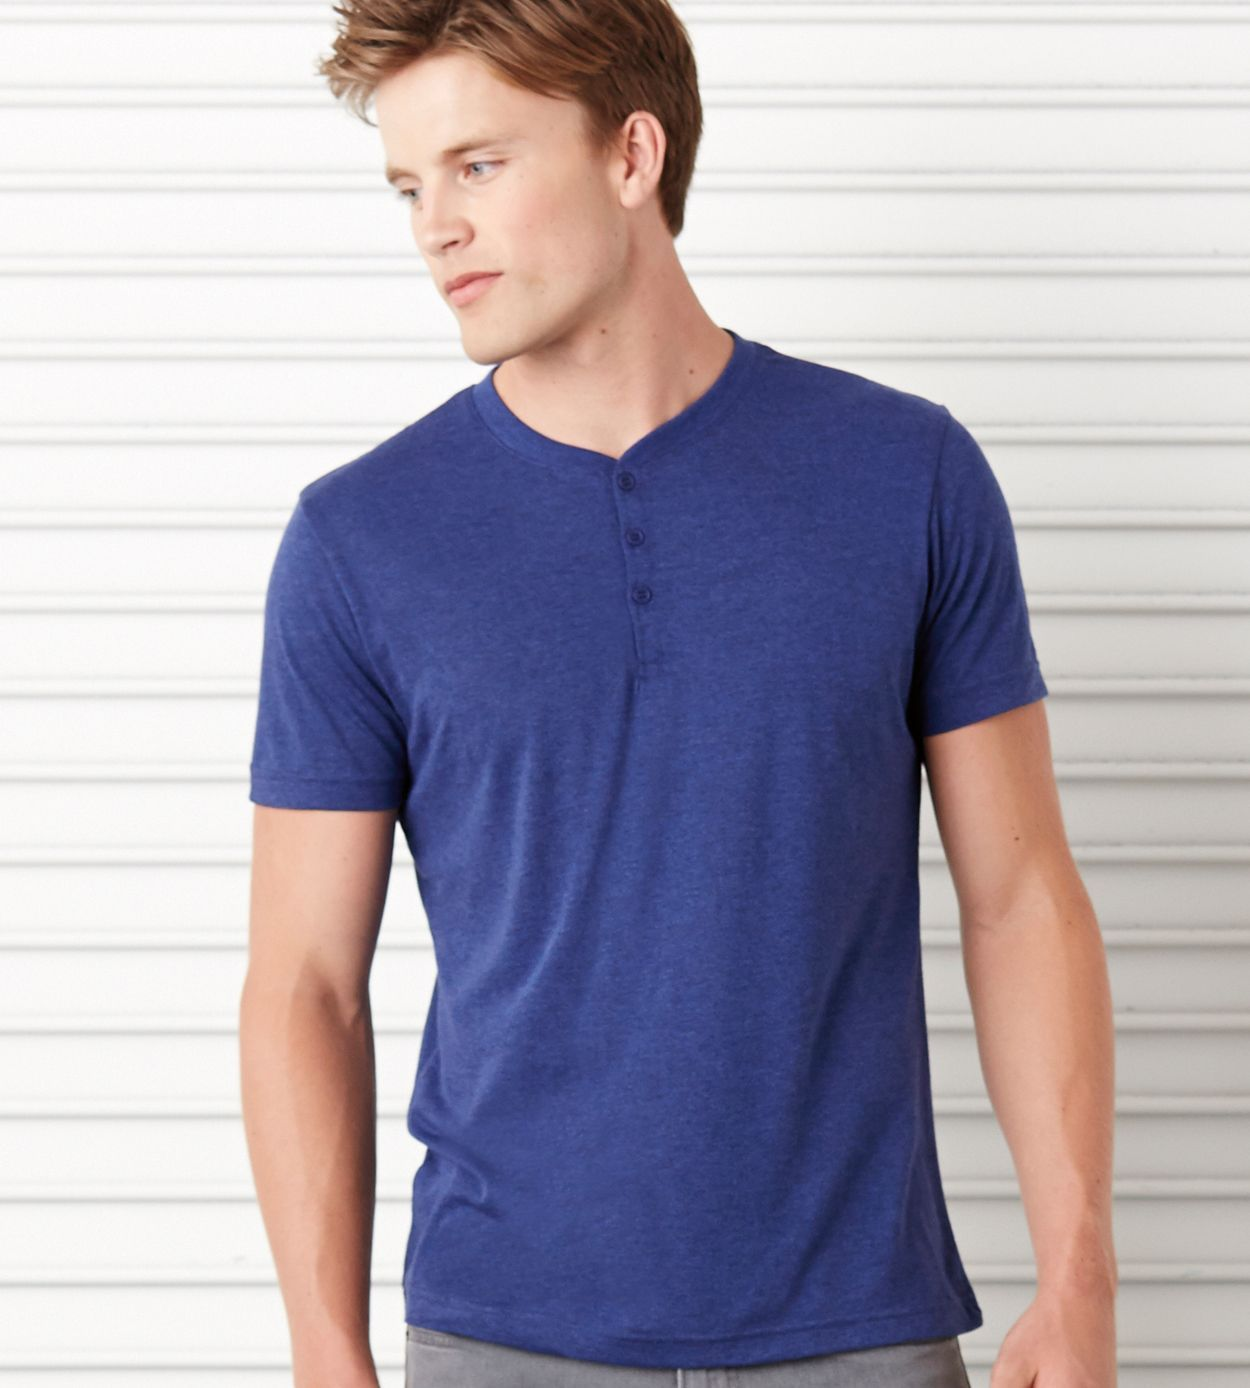 C3125 bella canvas mens triblend henley solid 3 button for Mens xl tall henley shirts